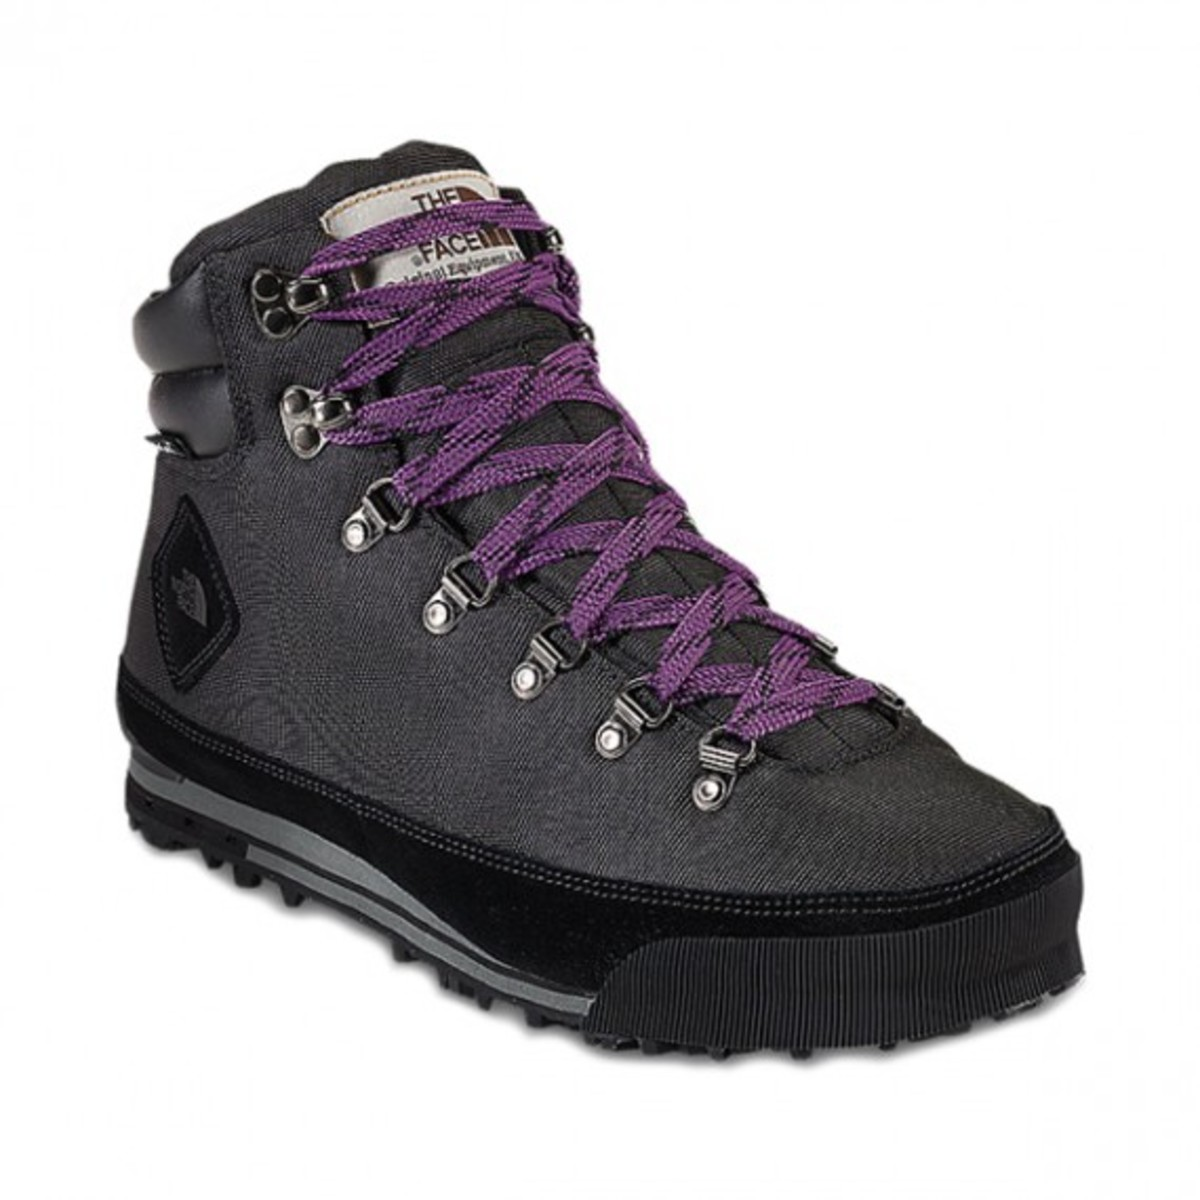 the-north-face-back-to-berkley-boots-07